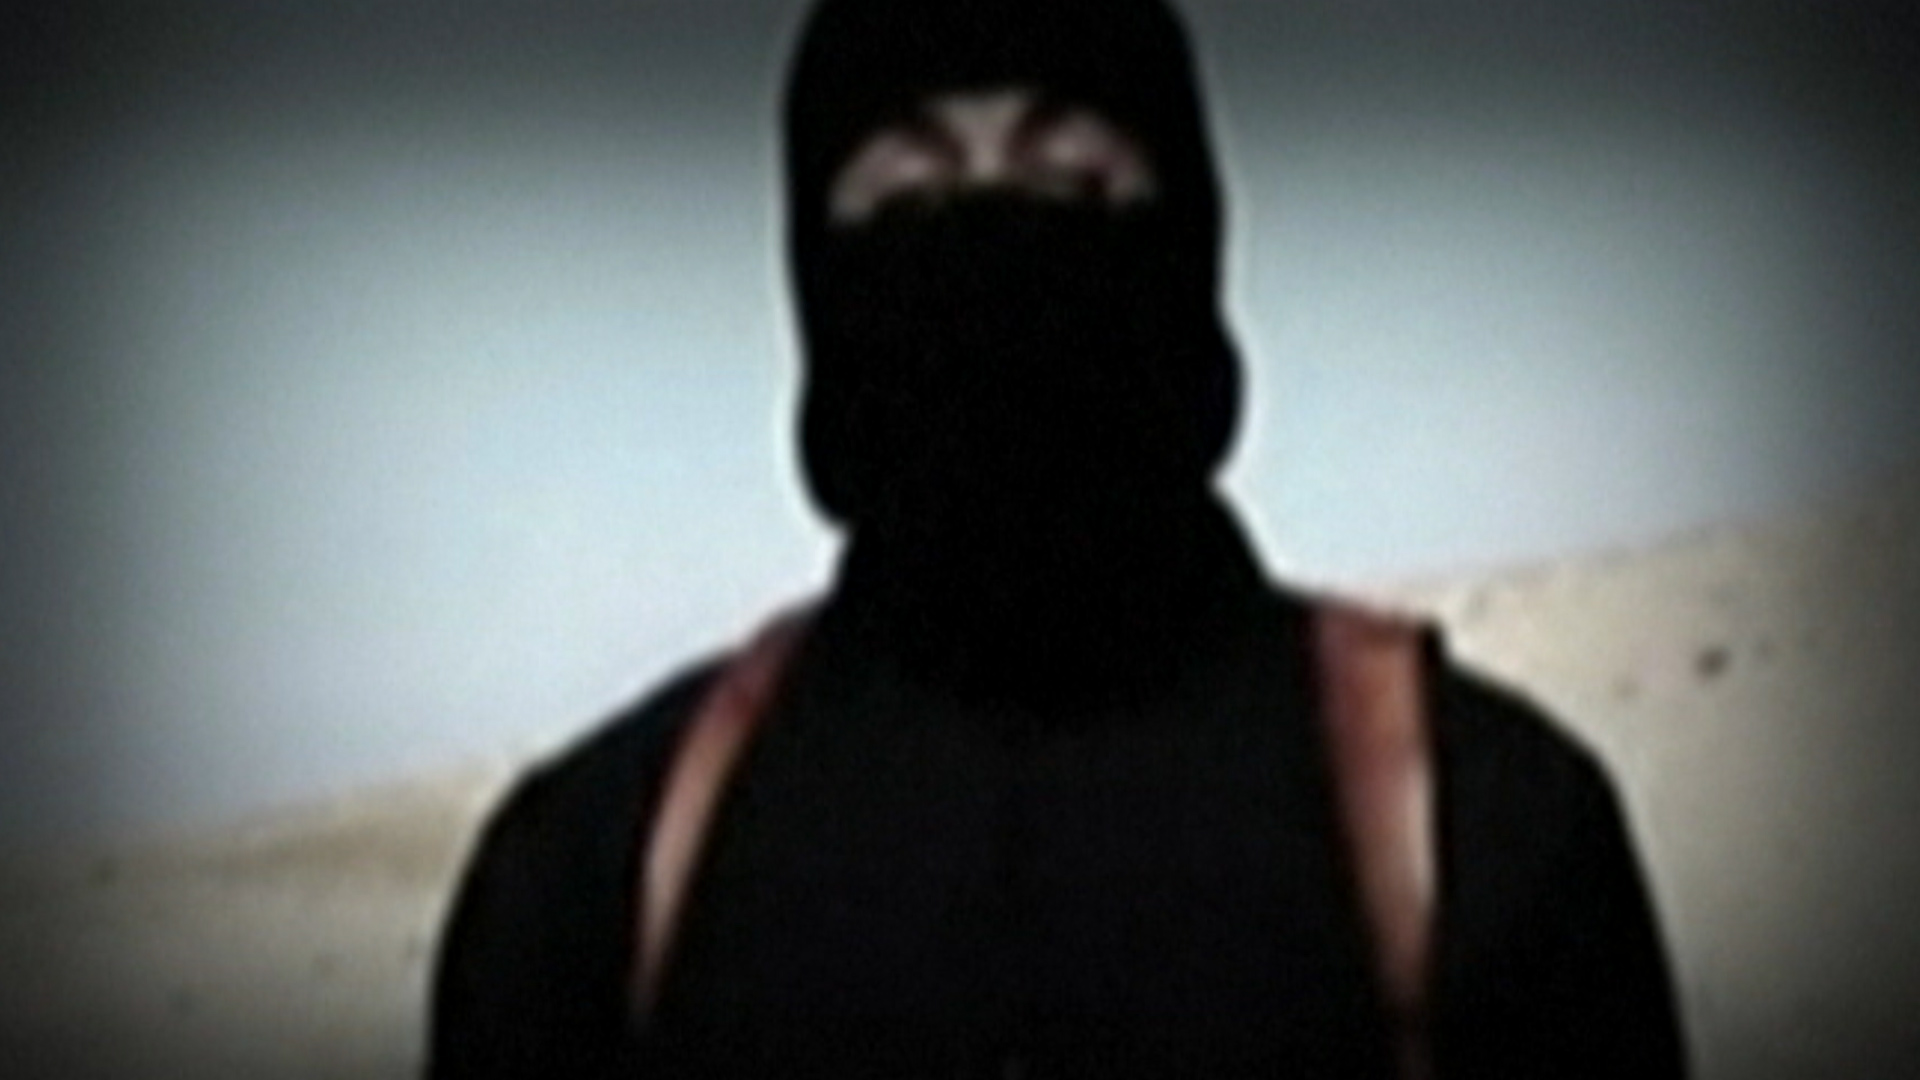 ISIS Releases Video Purportedly Showing Beheading of Alleged Russian Spy